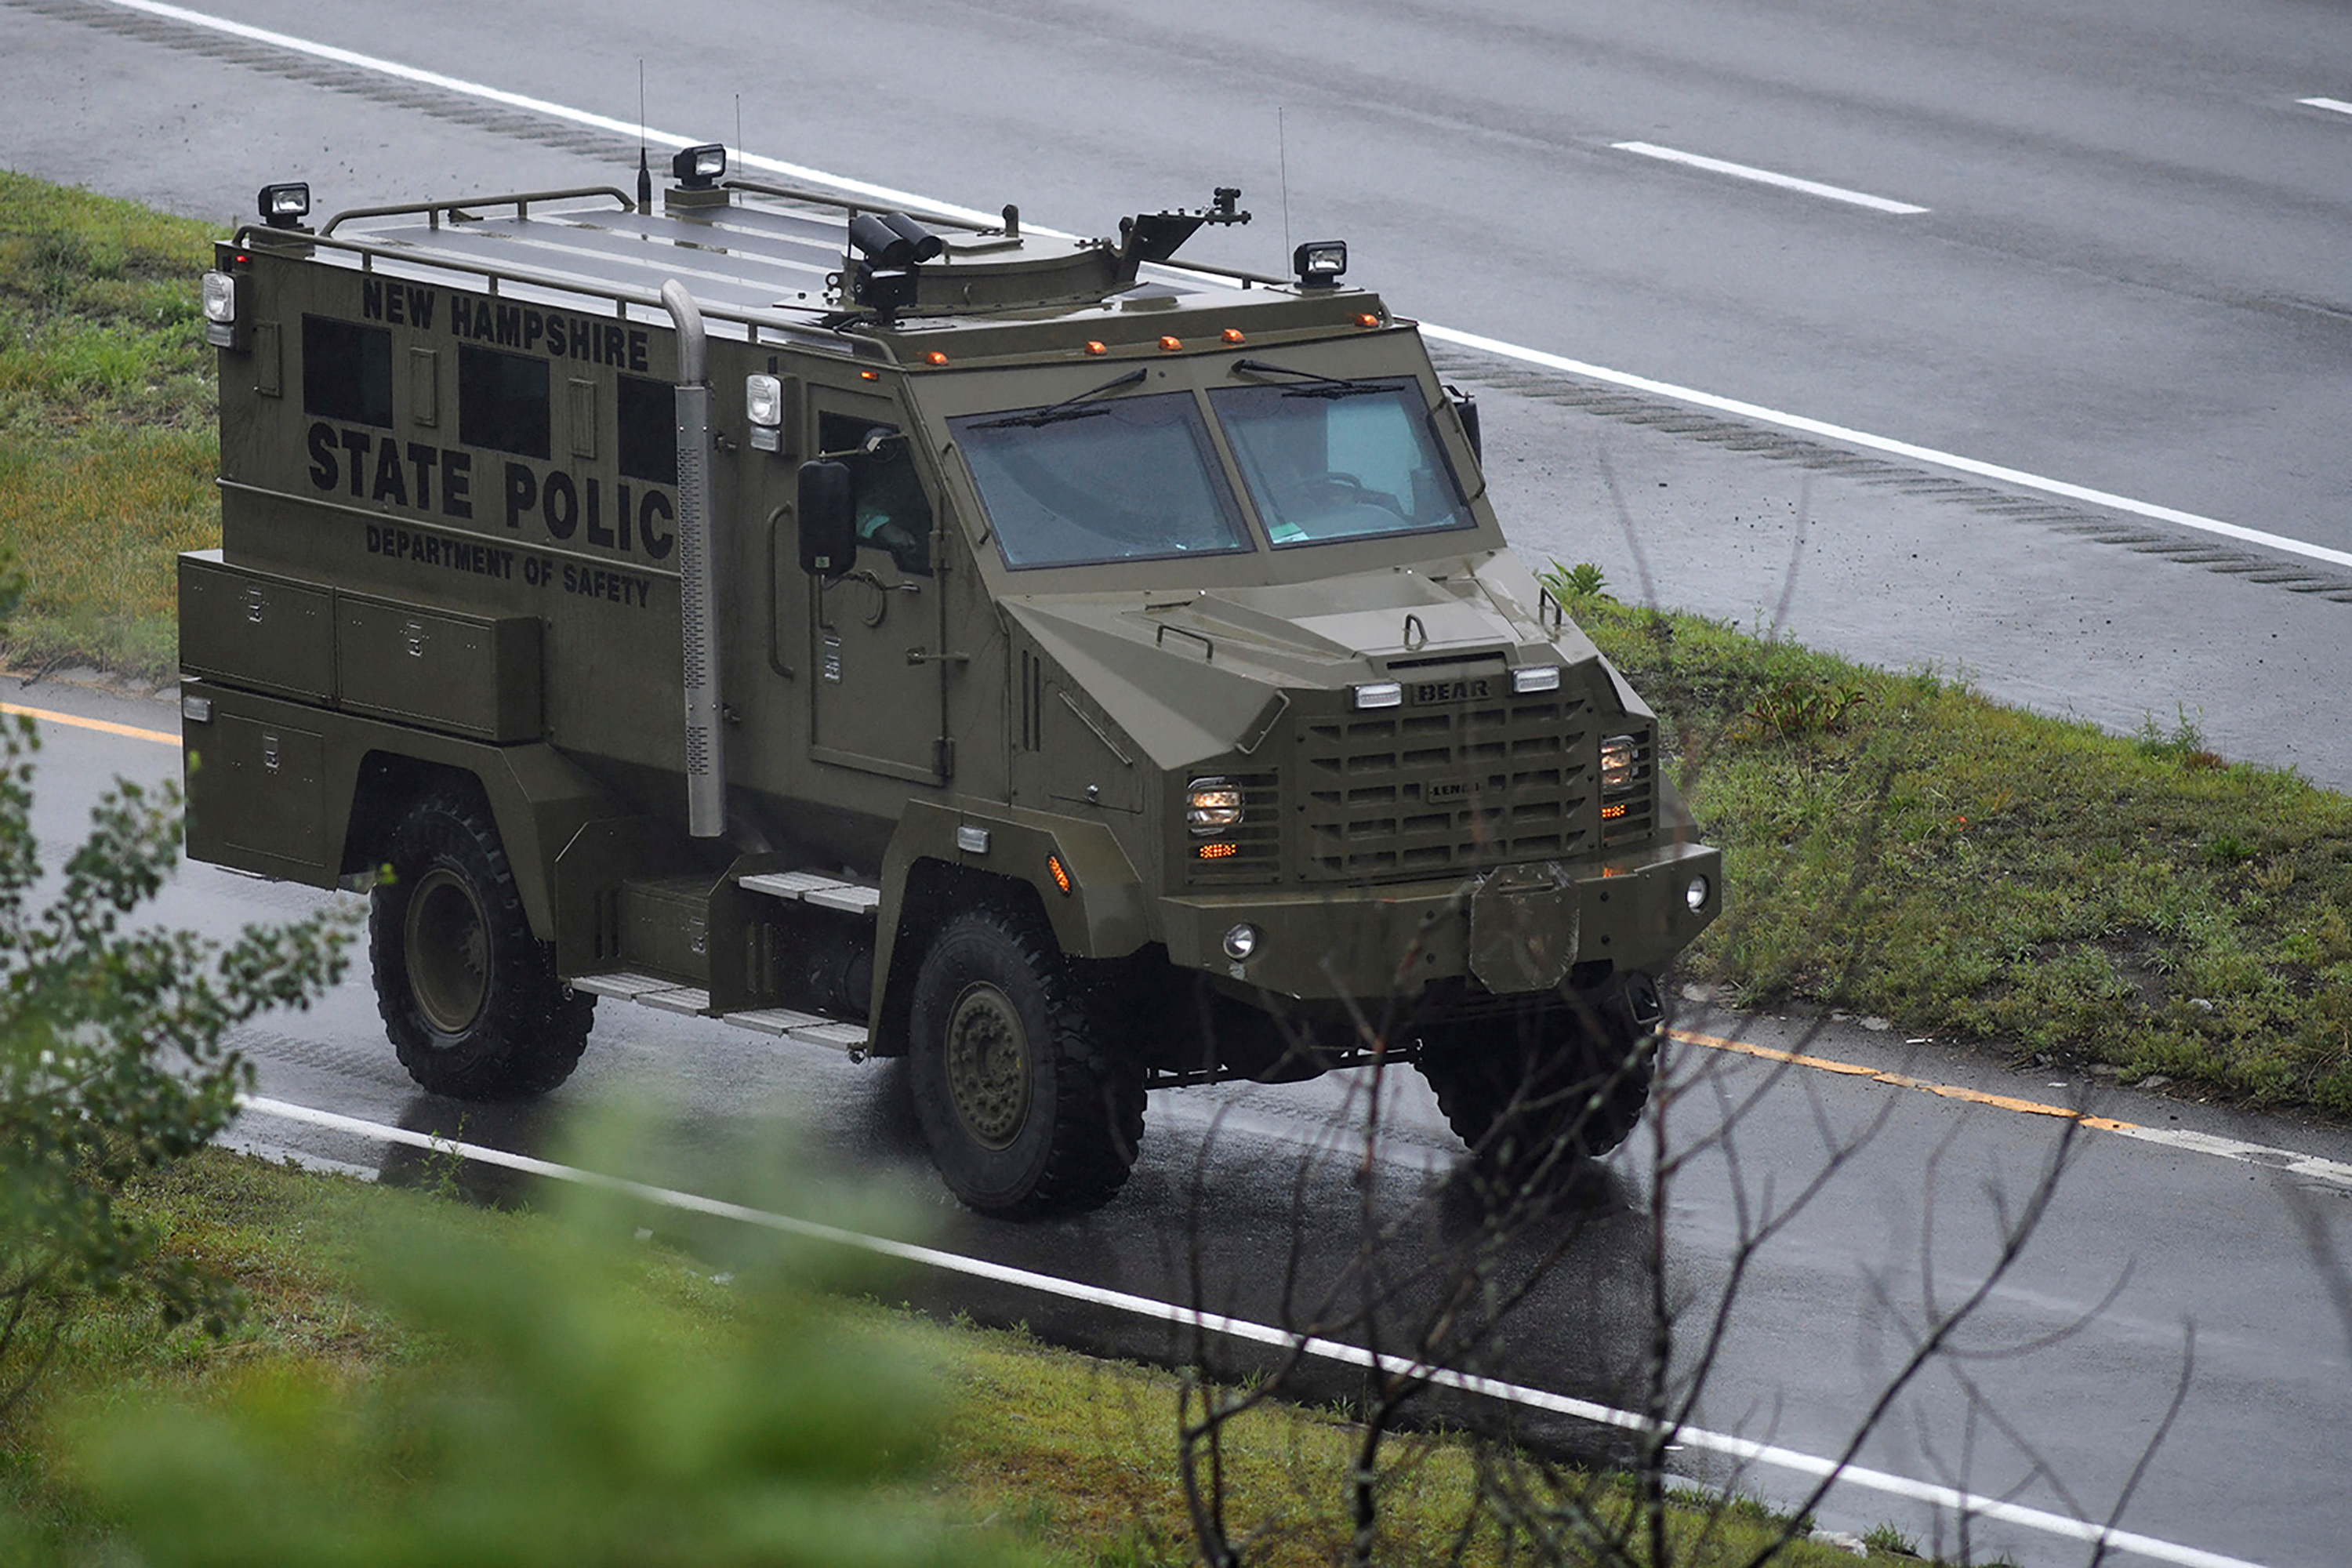 An armored police vehicle leaves the scene after state police announced they were conducting a search for armed persons following a traffic stop in Wakefield, Massachusetts, U.S. July 3, 2021.  REUTERS/Faith Ninivaggi